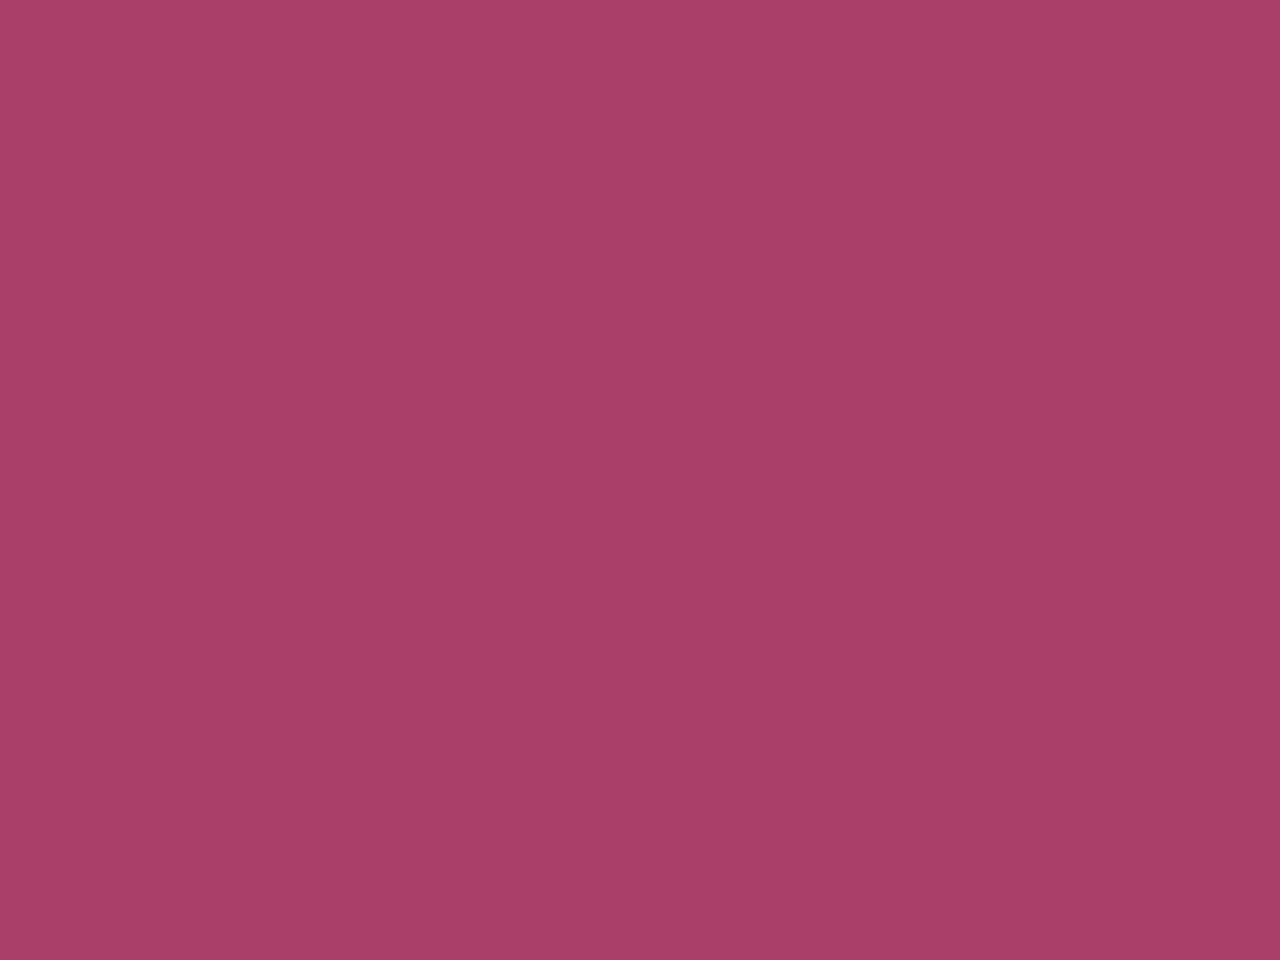 1280x960 Medium Ruby Solid Color Background